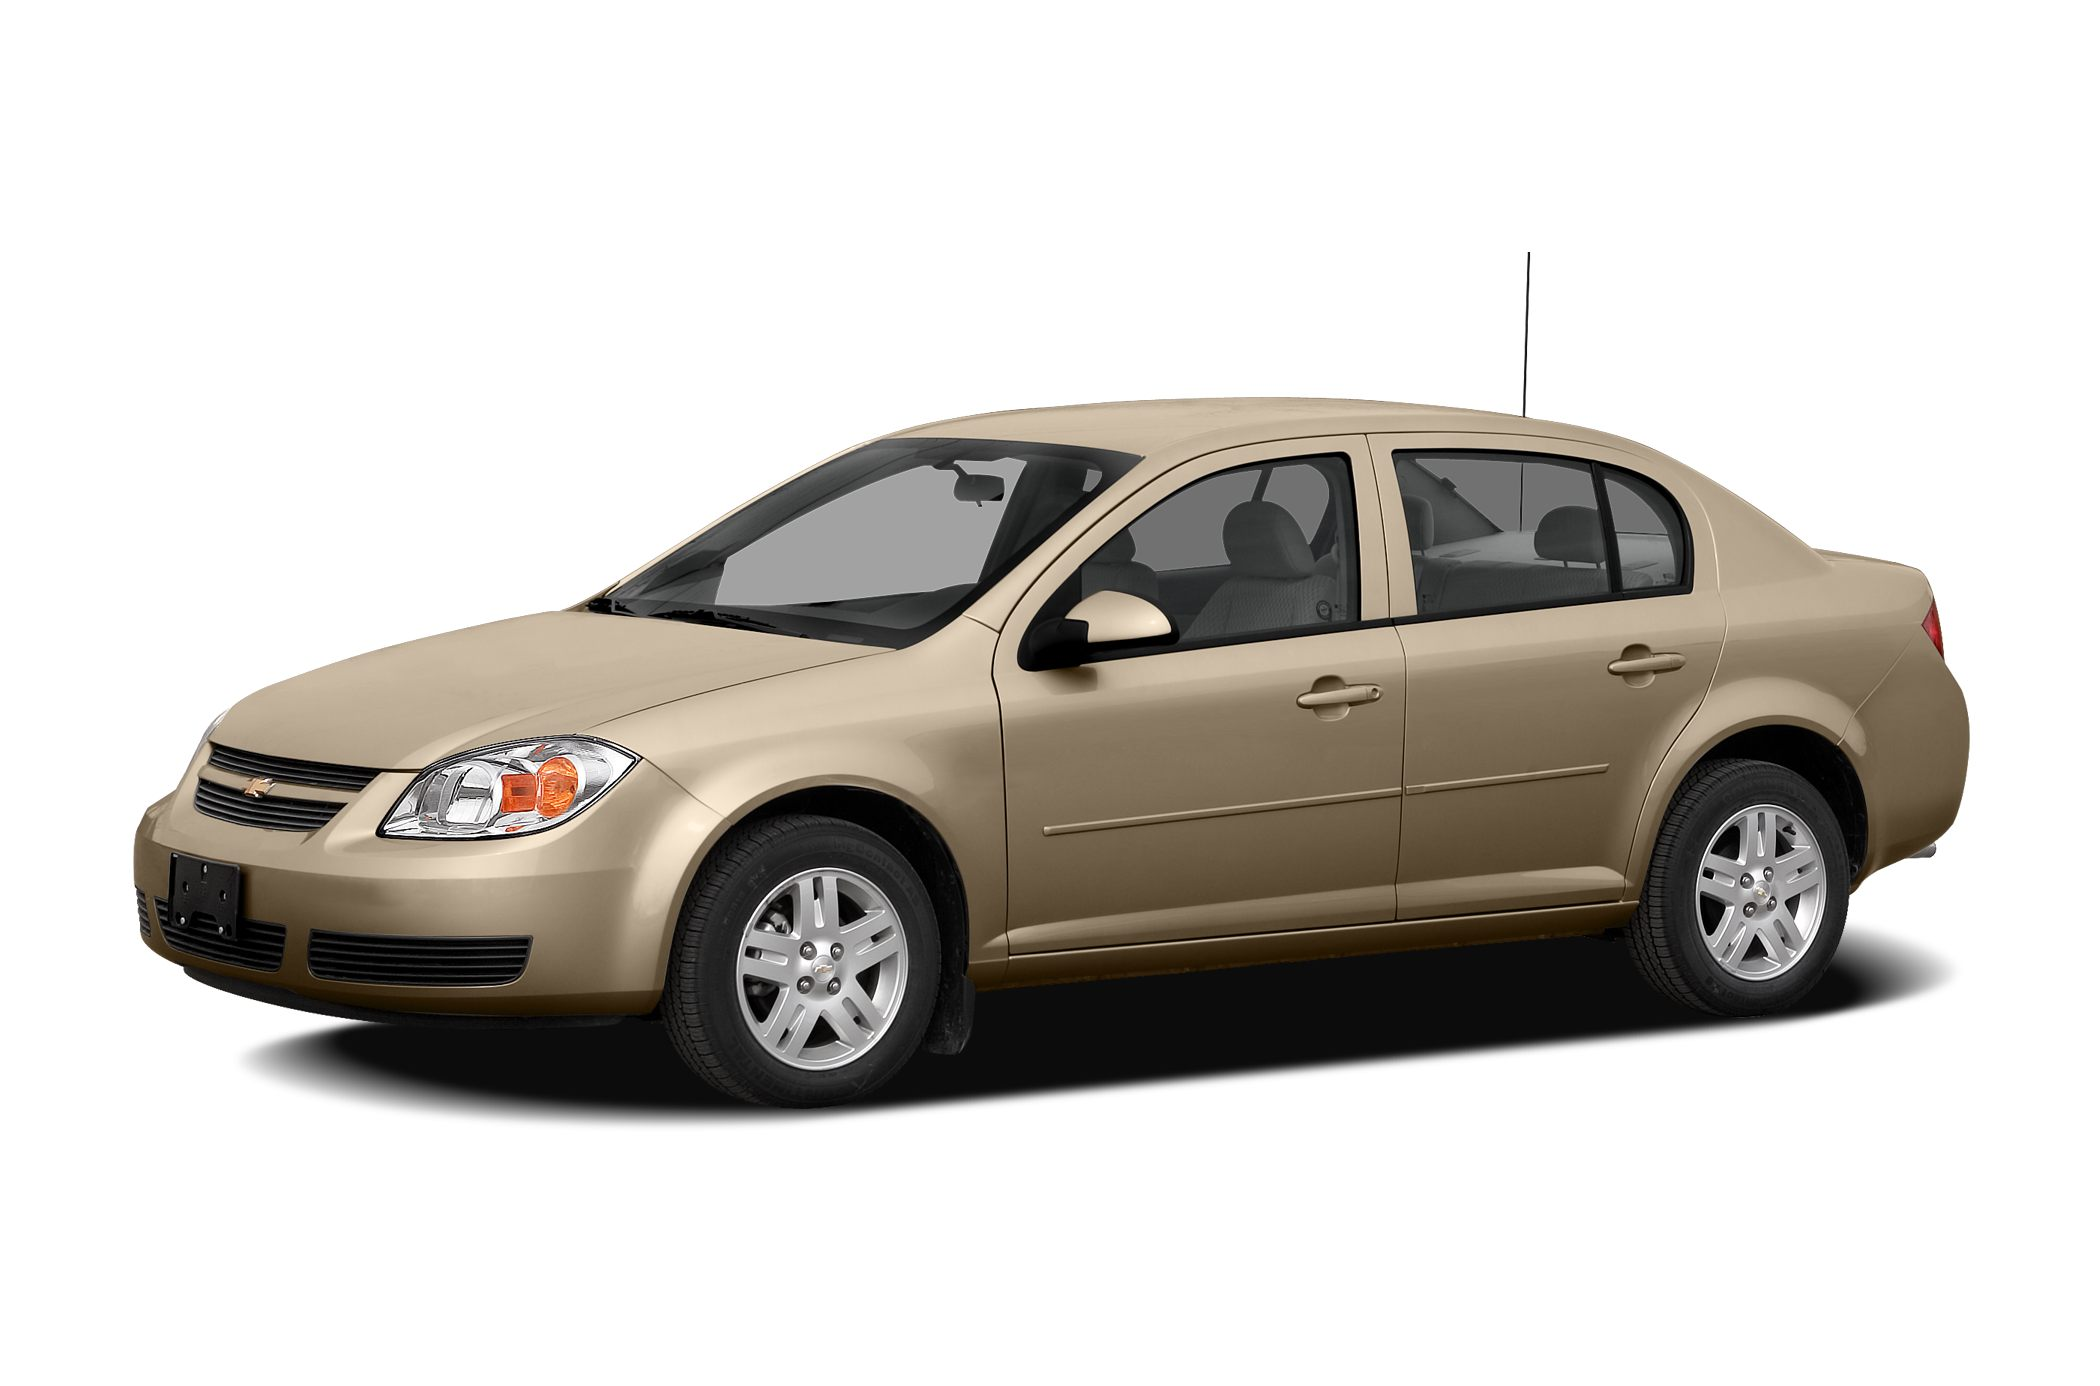 2008 Chevrolet Cobalt LT Land a deal on this 2008 Chevrolet Cobalt LT before someone else takes it